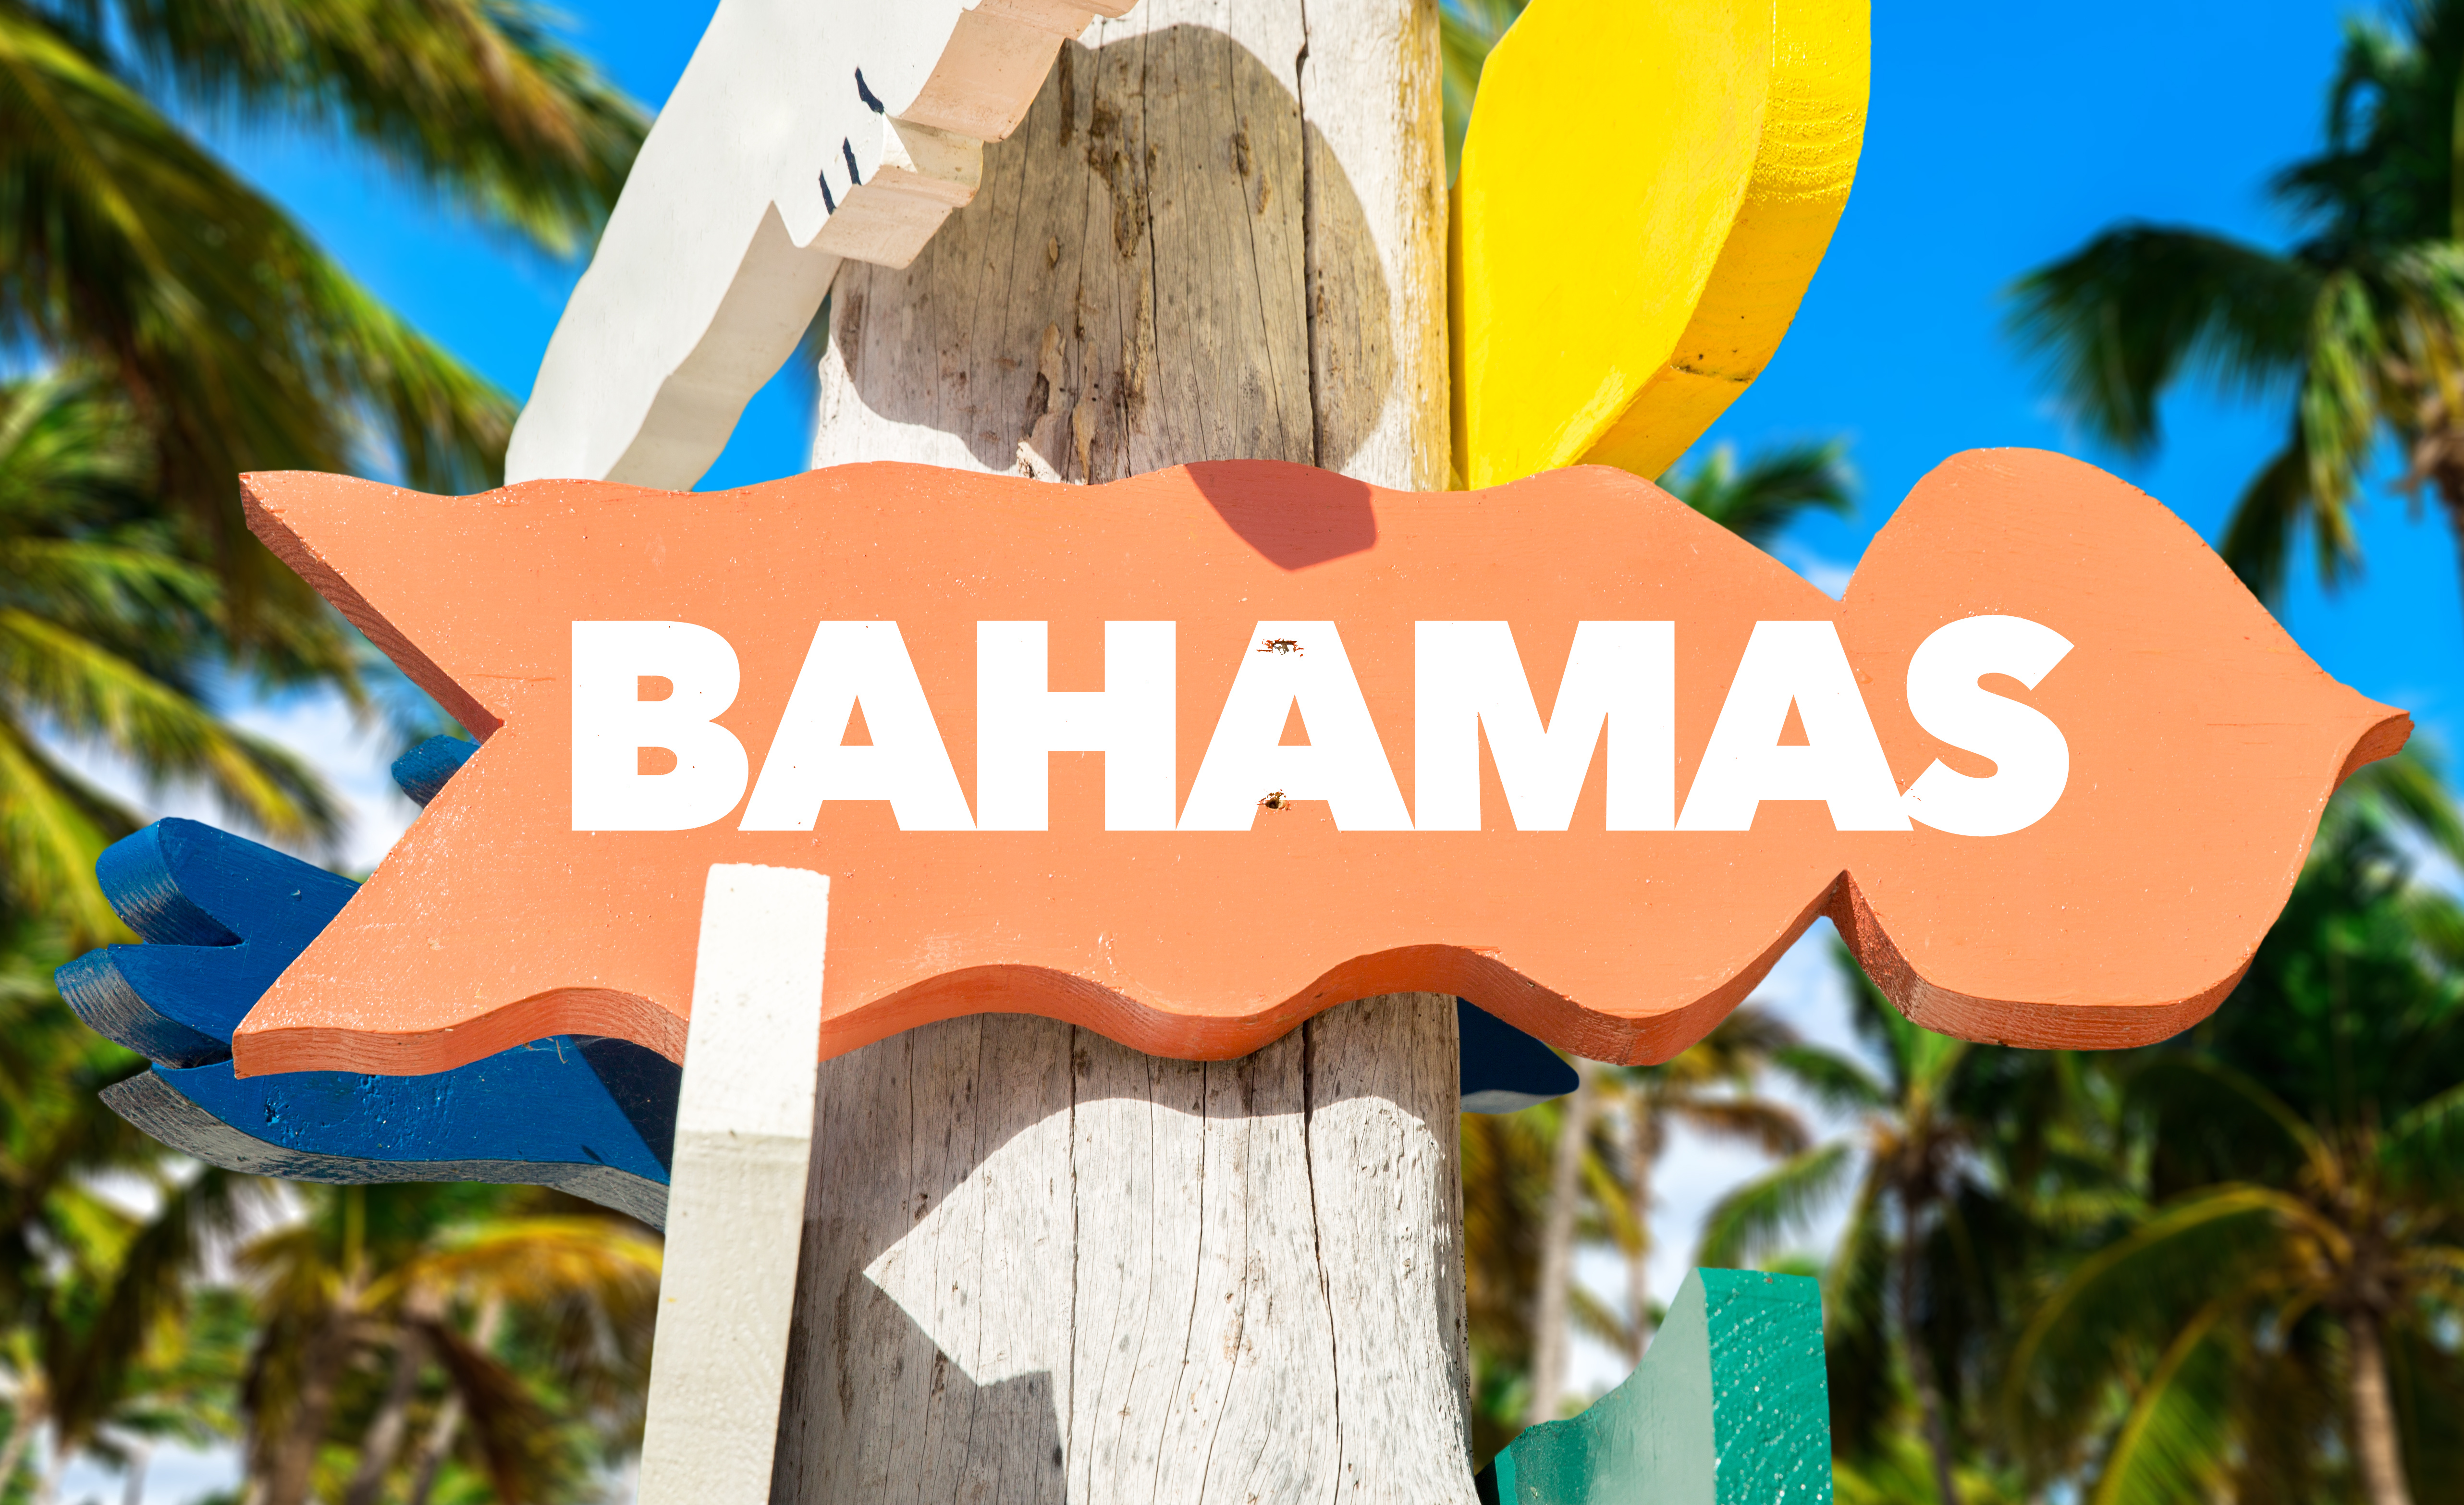 Bahamas signpost with palm trees